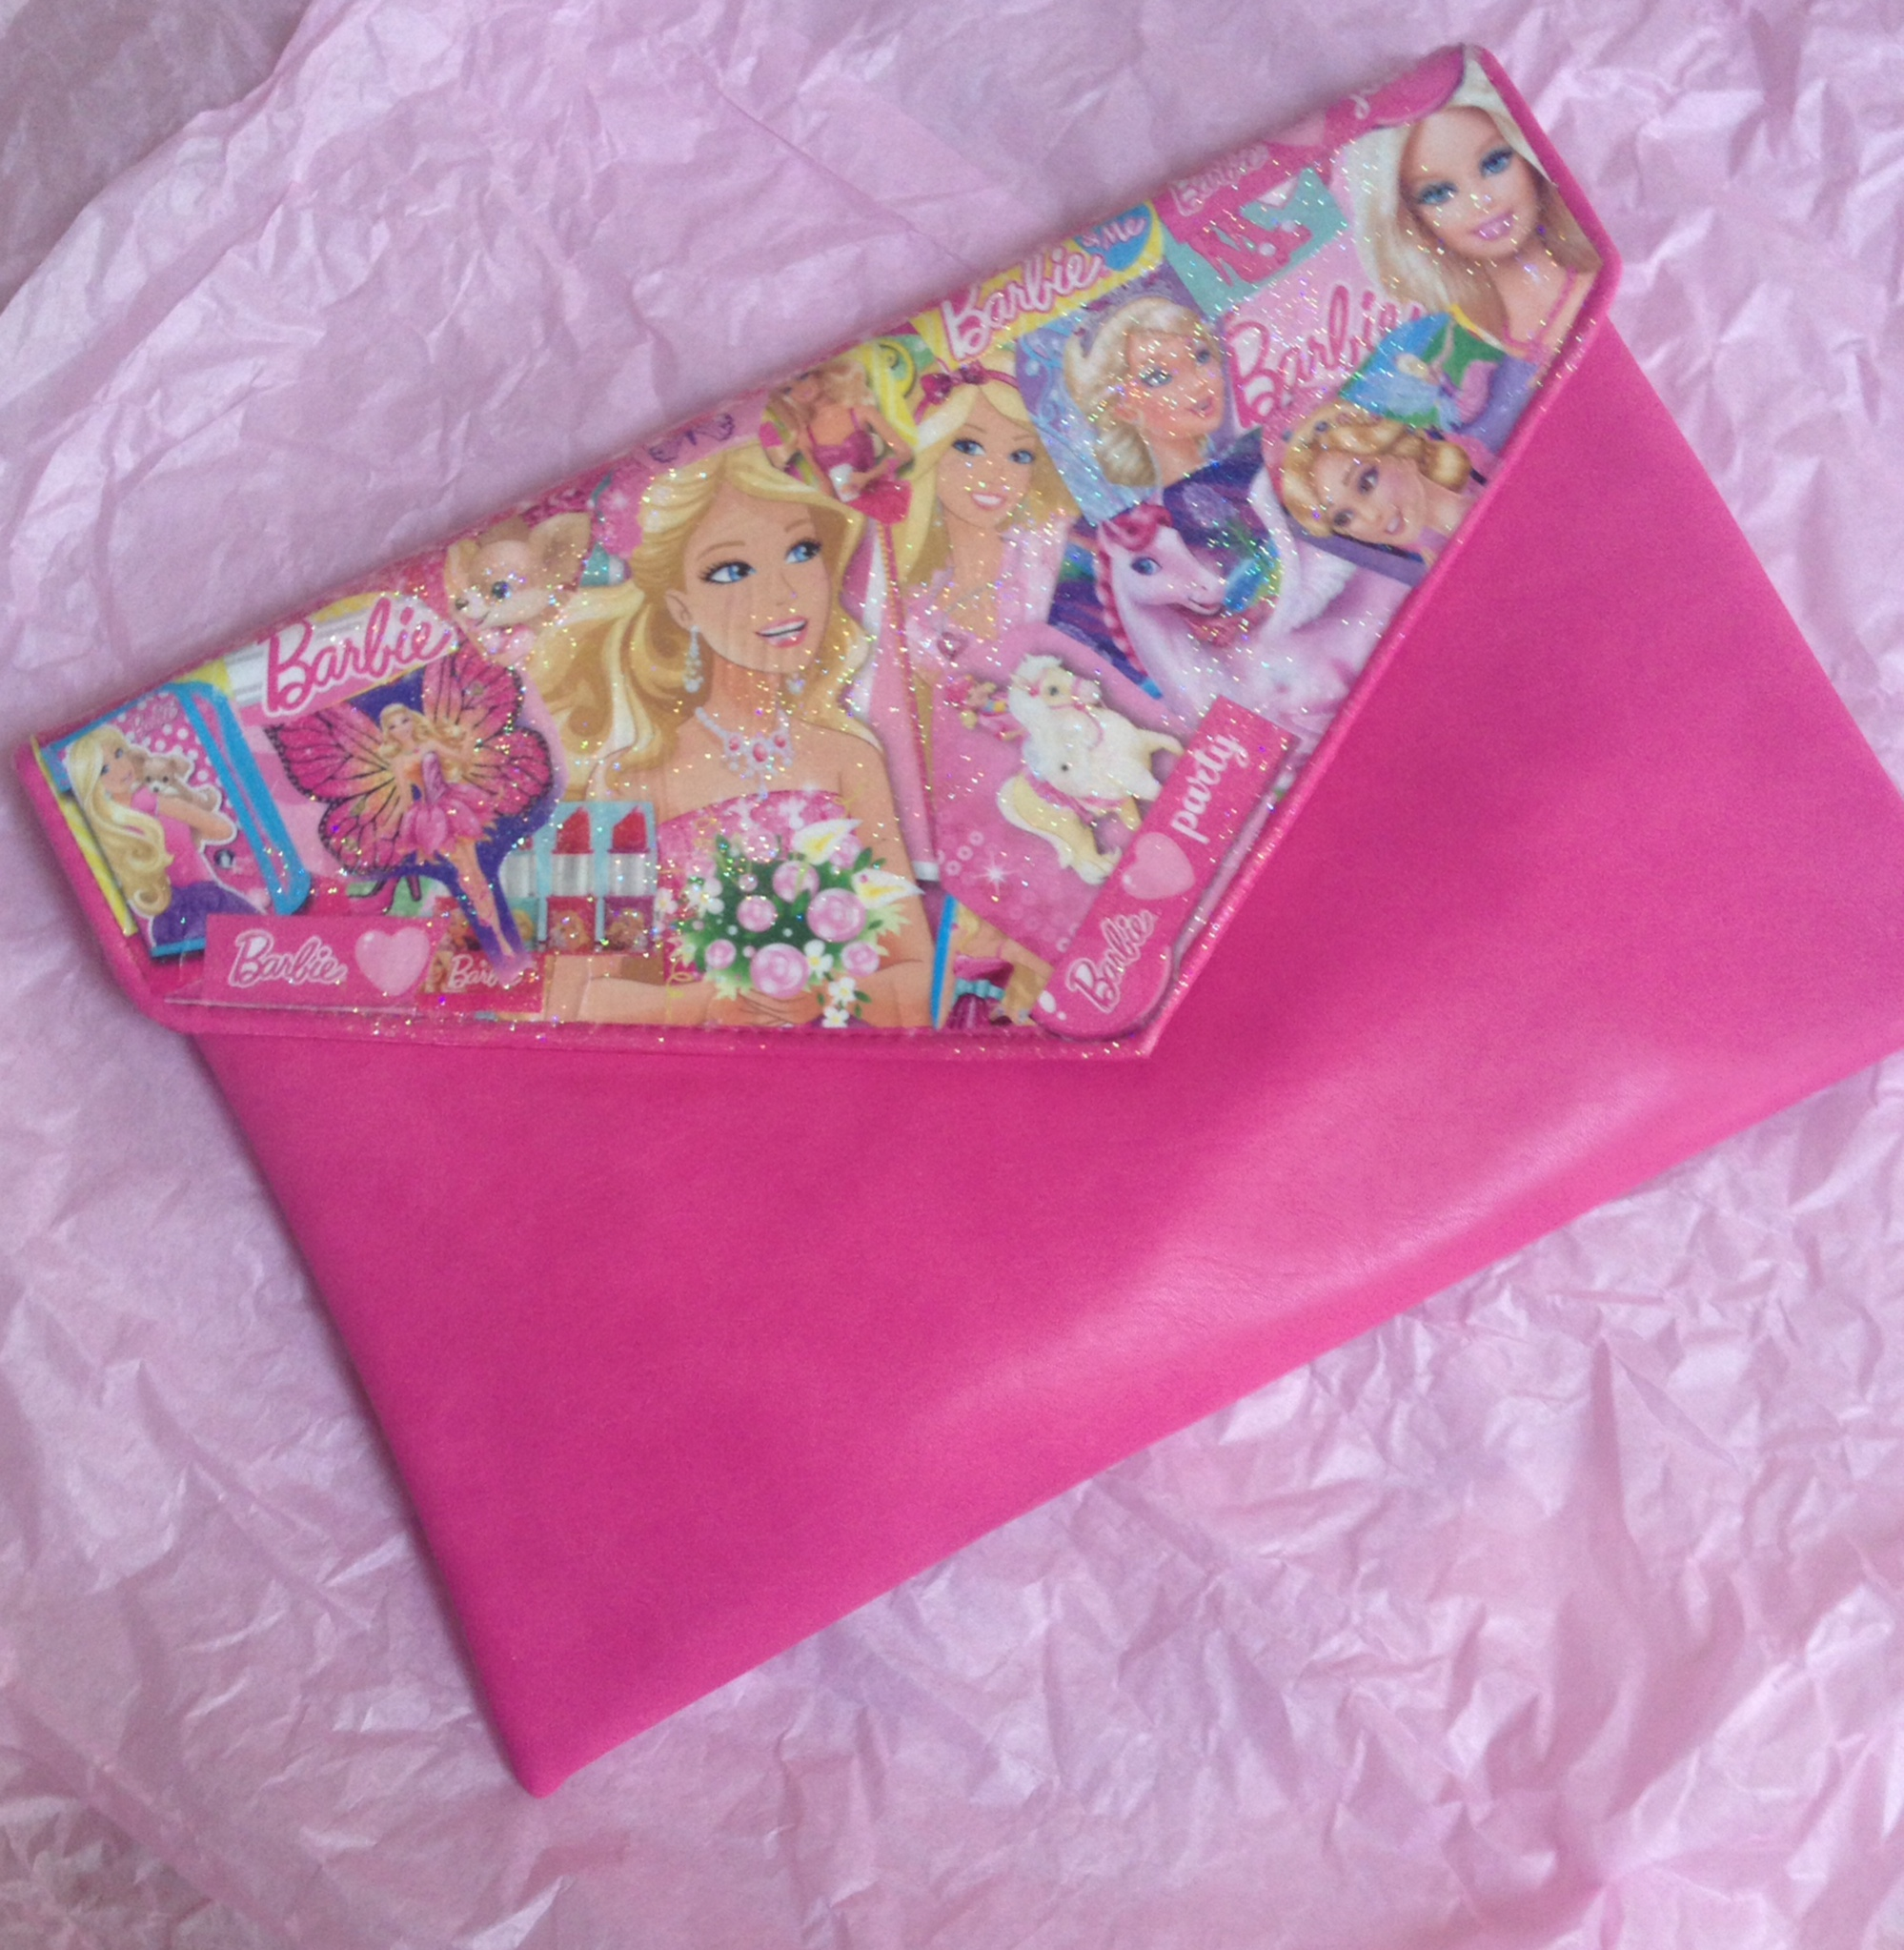 Barbie bag front